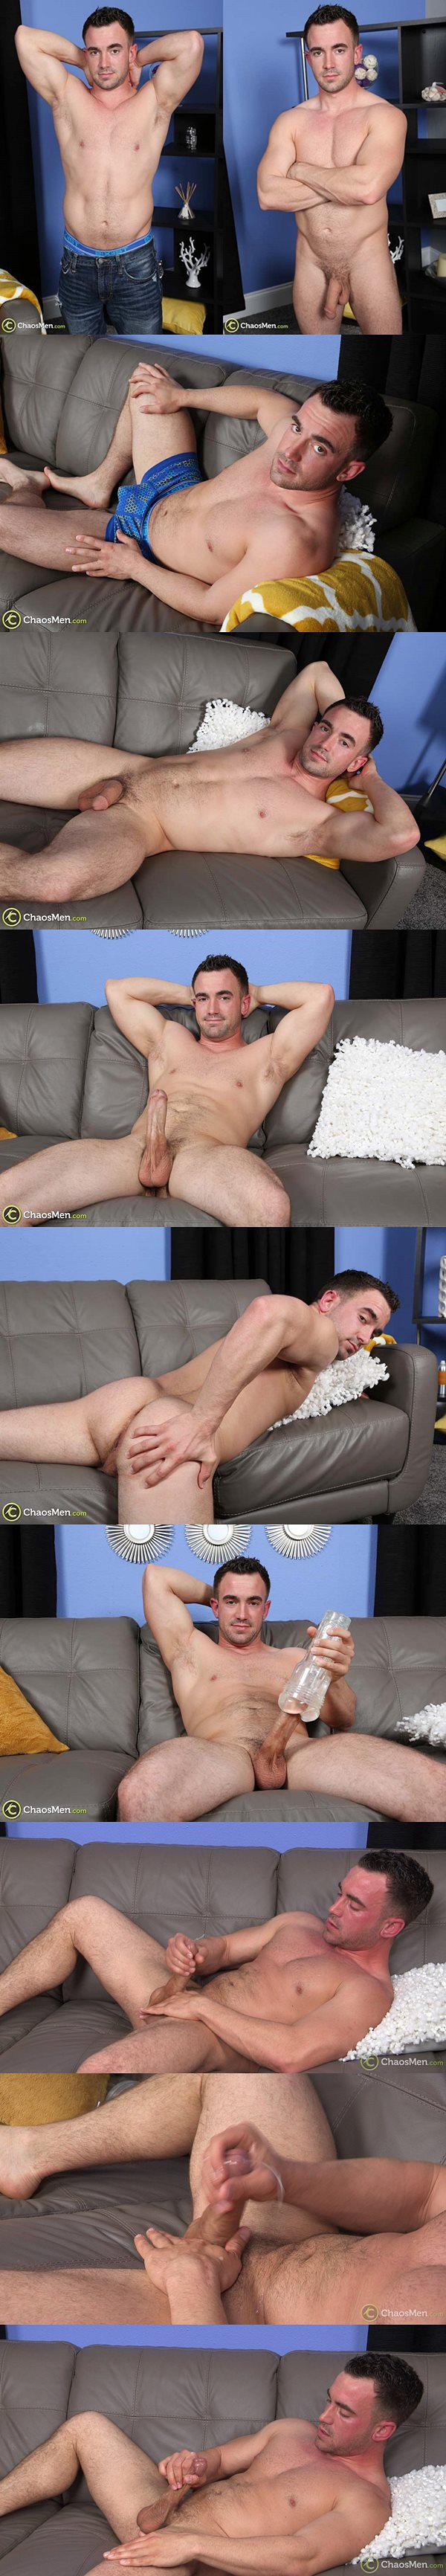 Hot new bi-sexual jock Zak Fit plays with a fleshjack and wanks off at Chaosmen